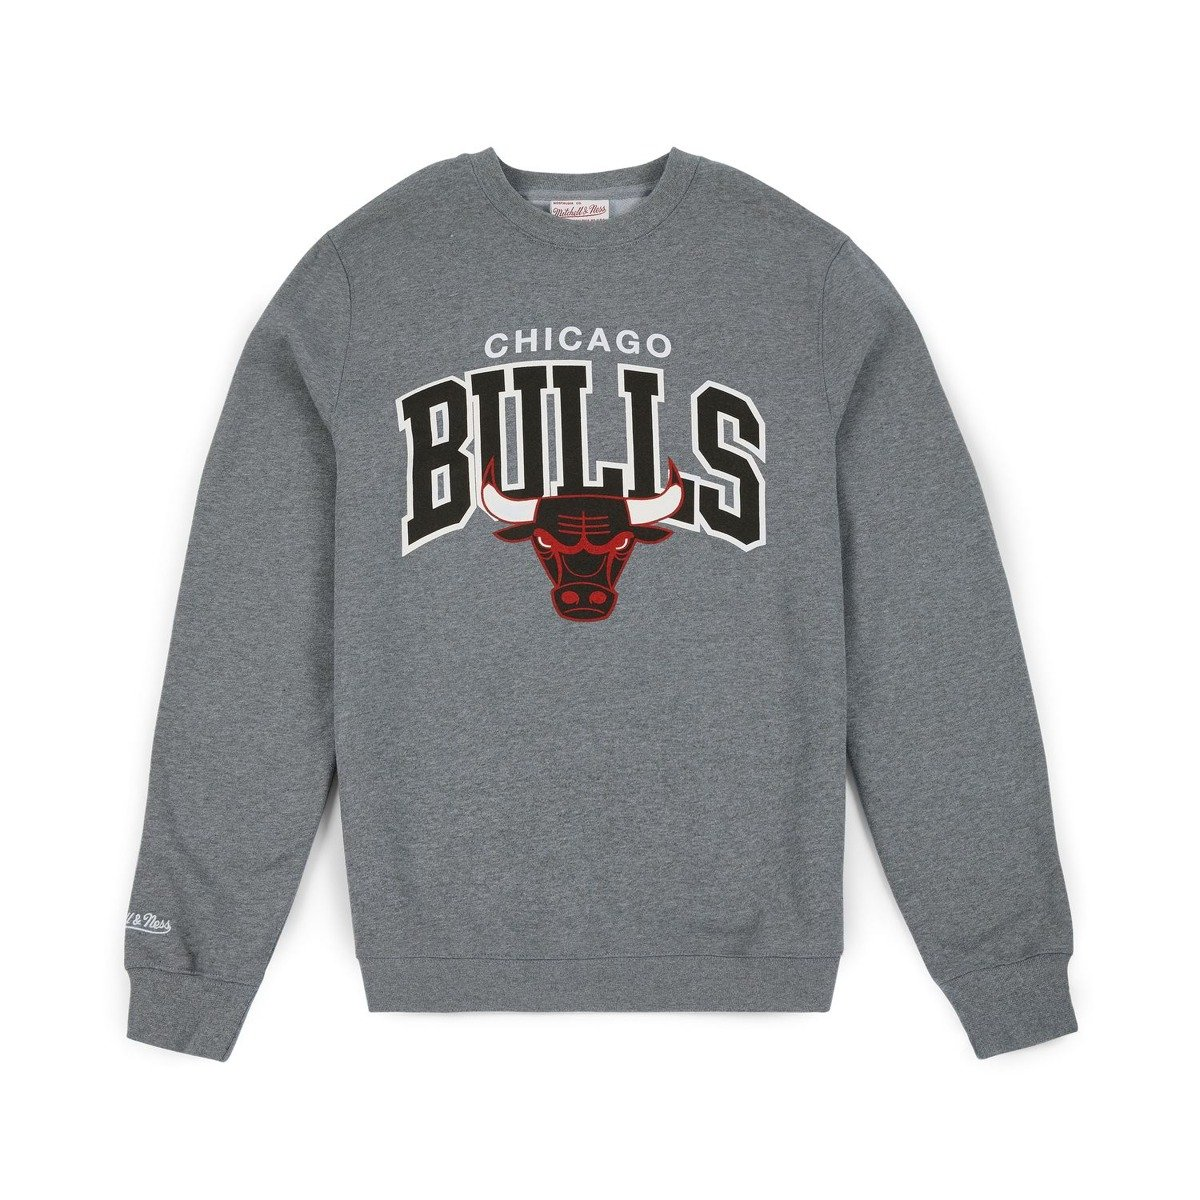 69a12a506 Mitchell   Ness NBA Chicago Bulls Sweatshirt